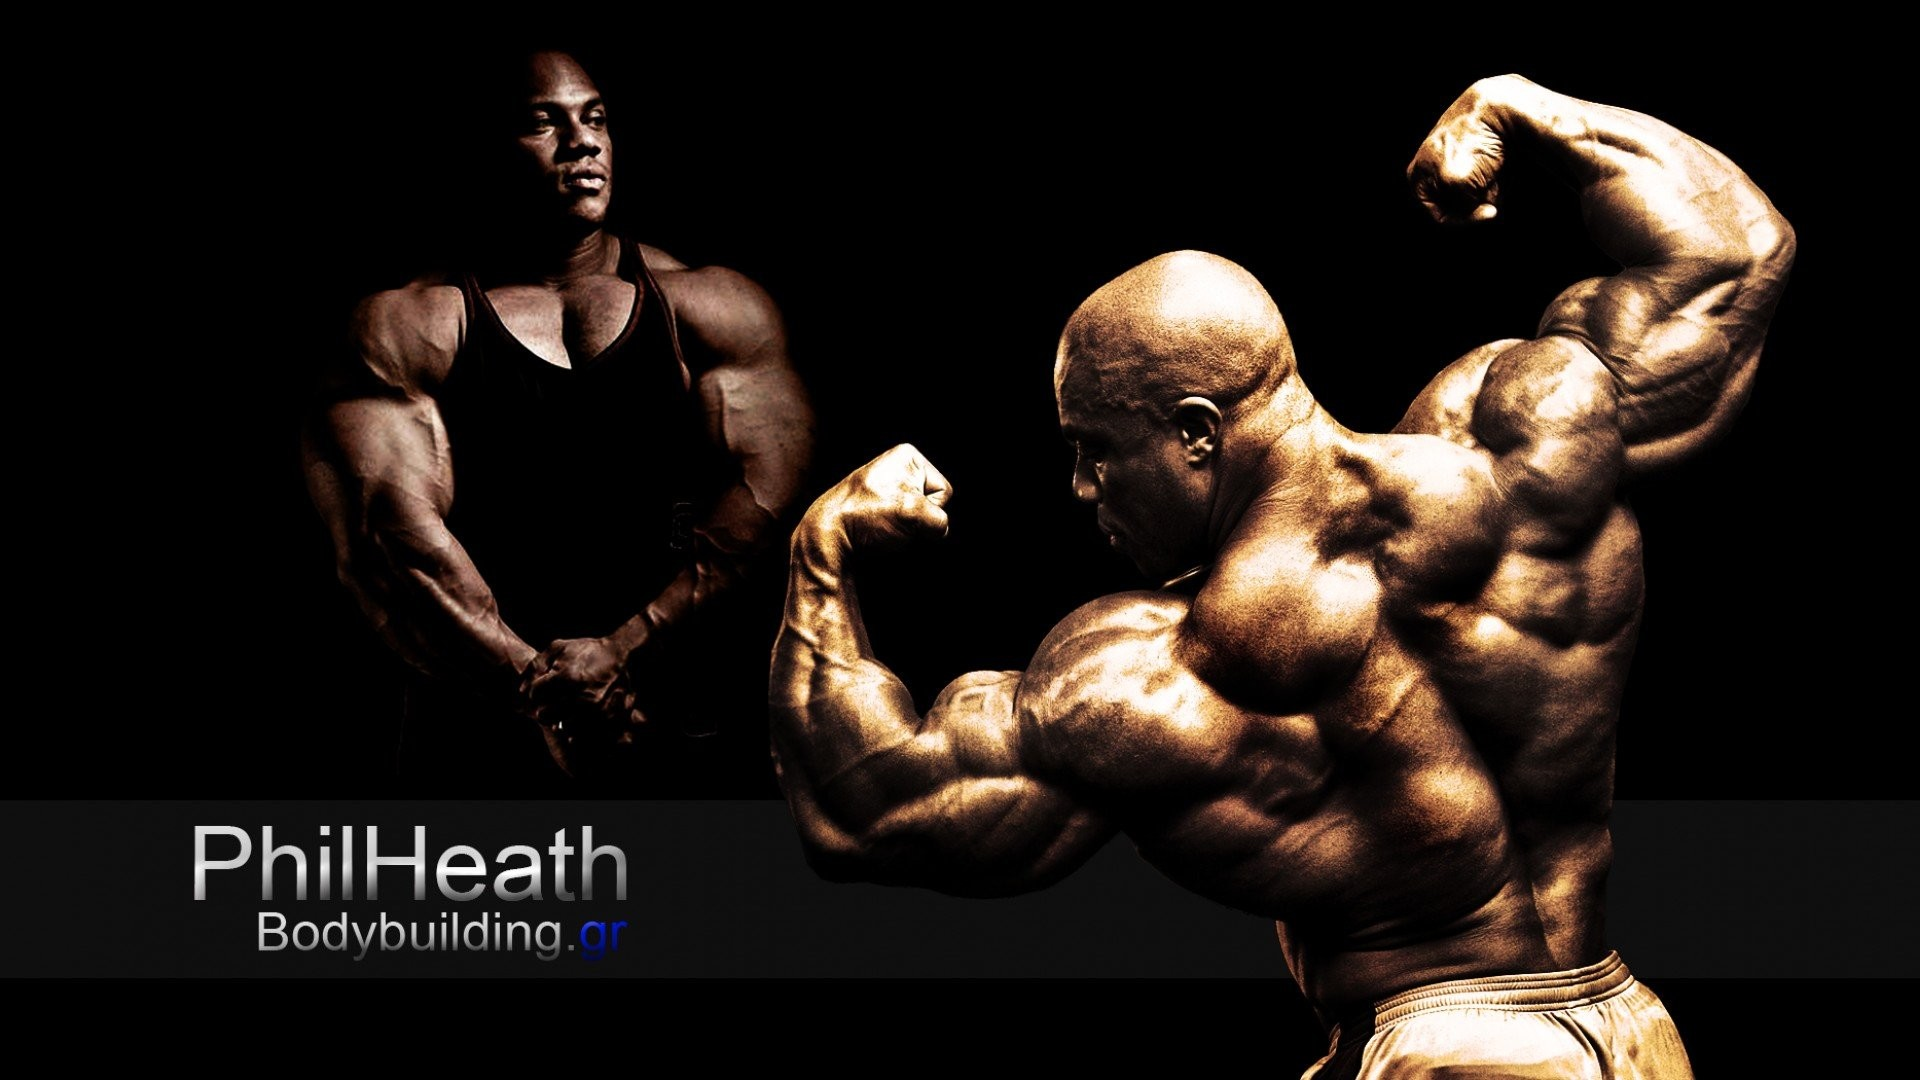 Body-building fitness muscle muscles weight lifting Bodybuilding (70)  wallpaper | | 415591 | WallpaperUP